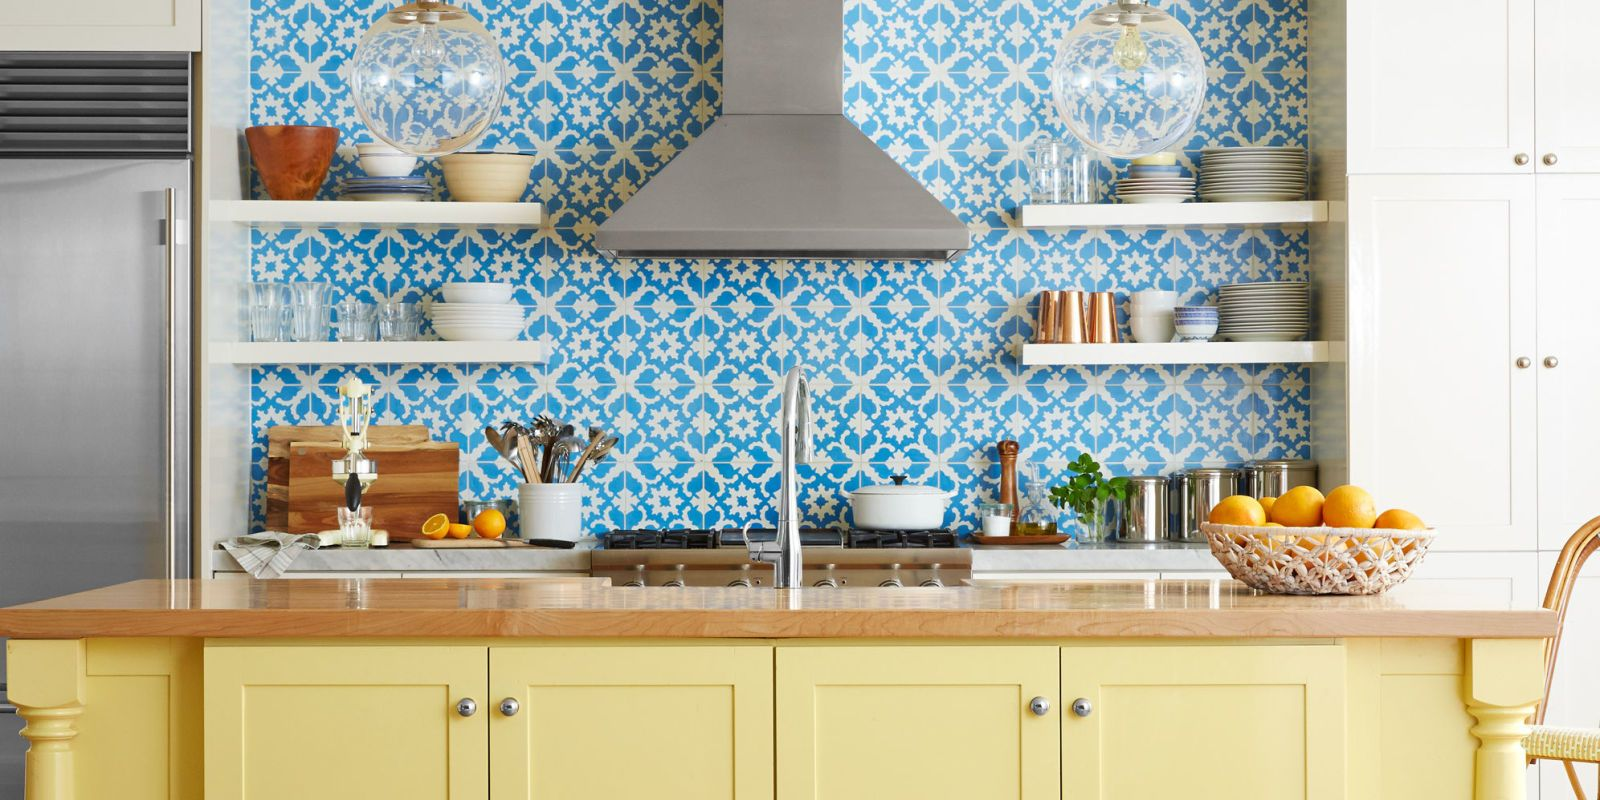 How to do kitchen backsplash ideas